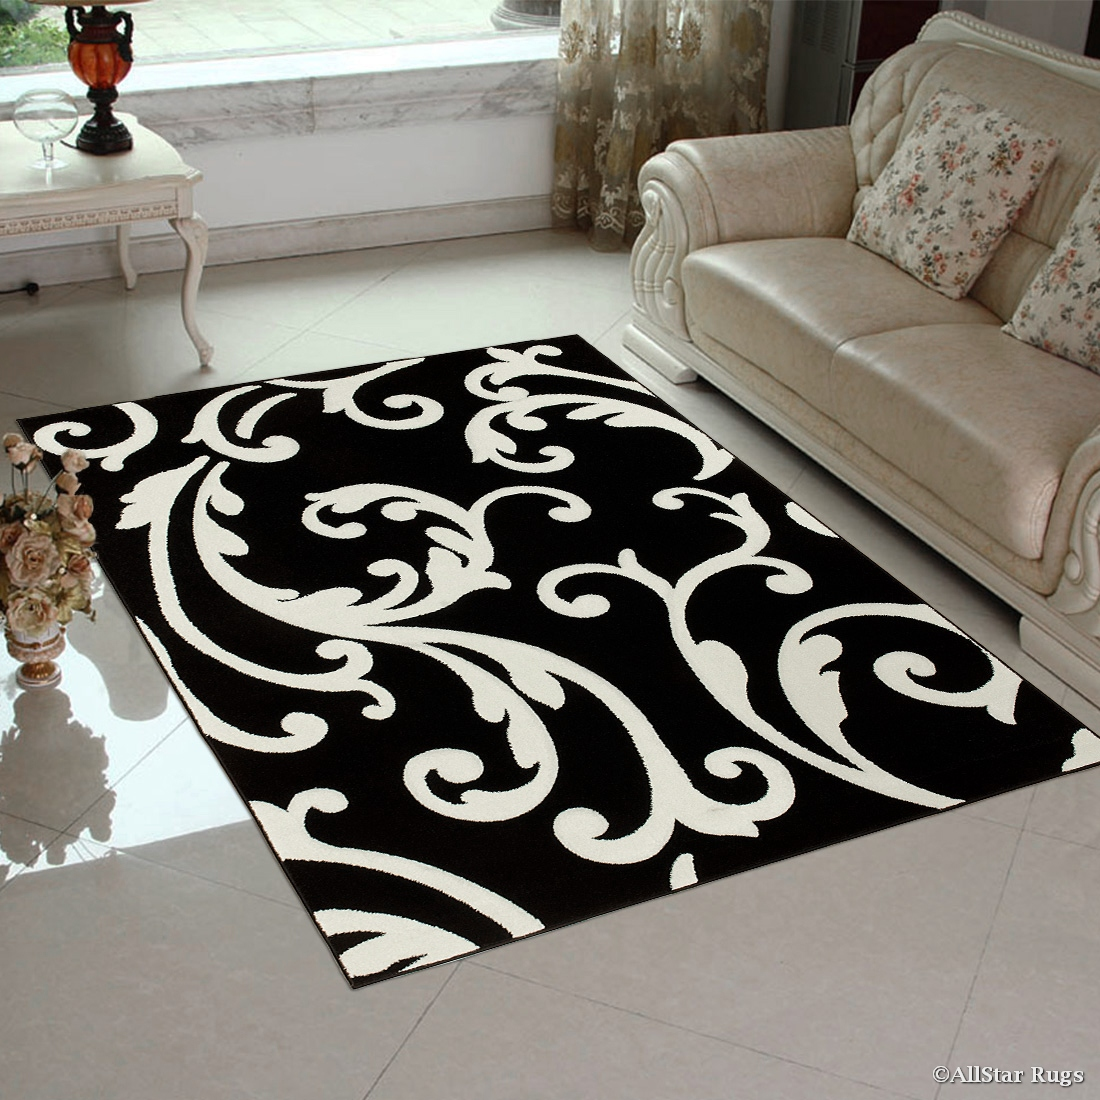 "Black Allstar with White Floral Design Modern Geometric Area Rug (5' 2"" x 7' 2"") by Overstock"